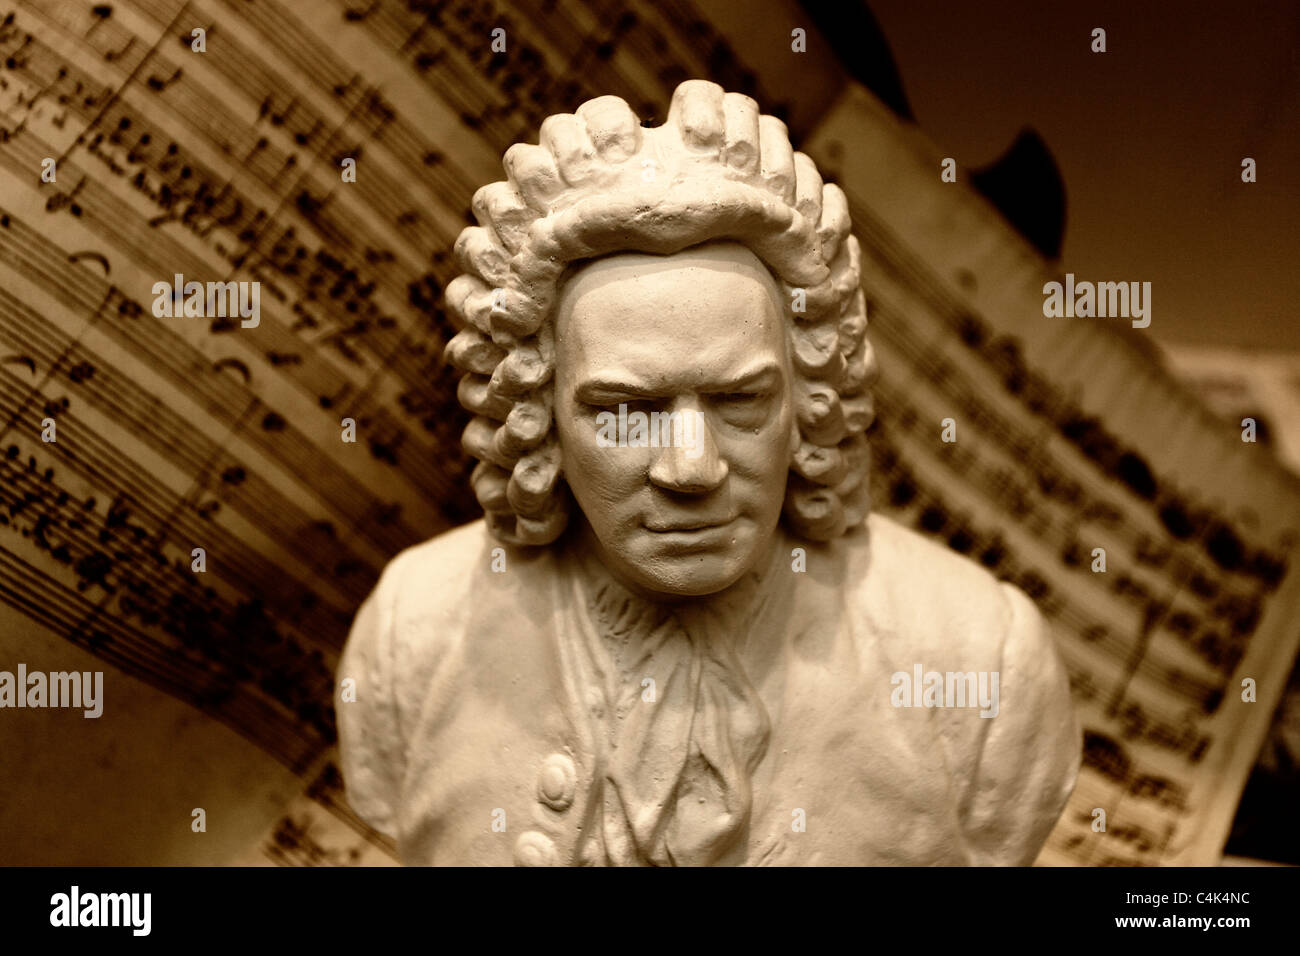 A plaster cast of the famous German composer, organist, harpsichordist and violist Johann Sebastian Bach in front - Stock Image